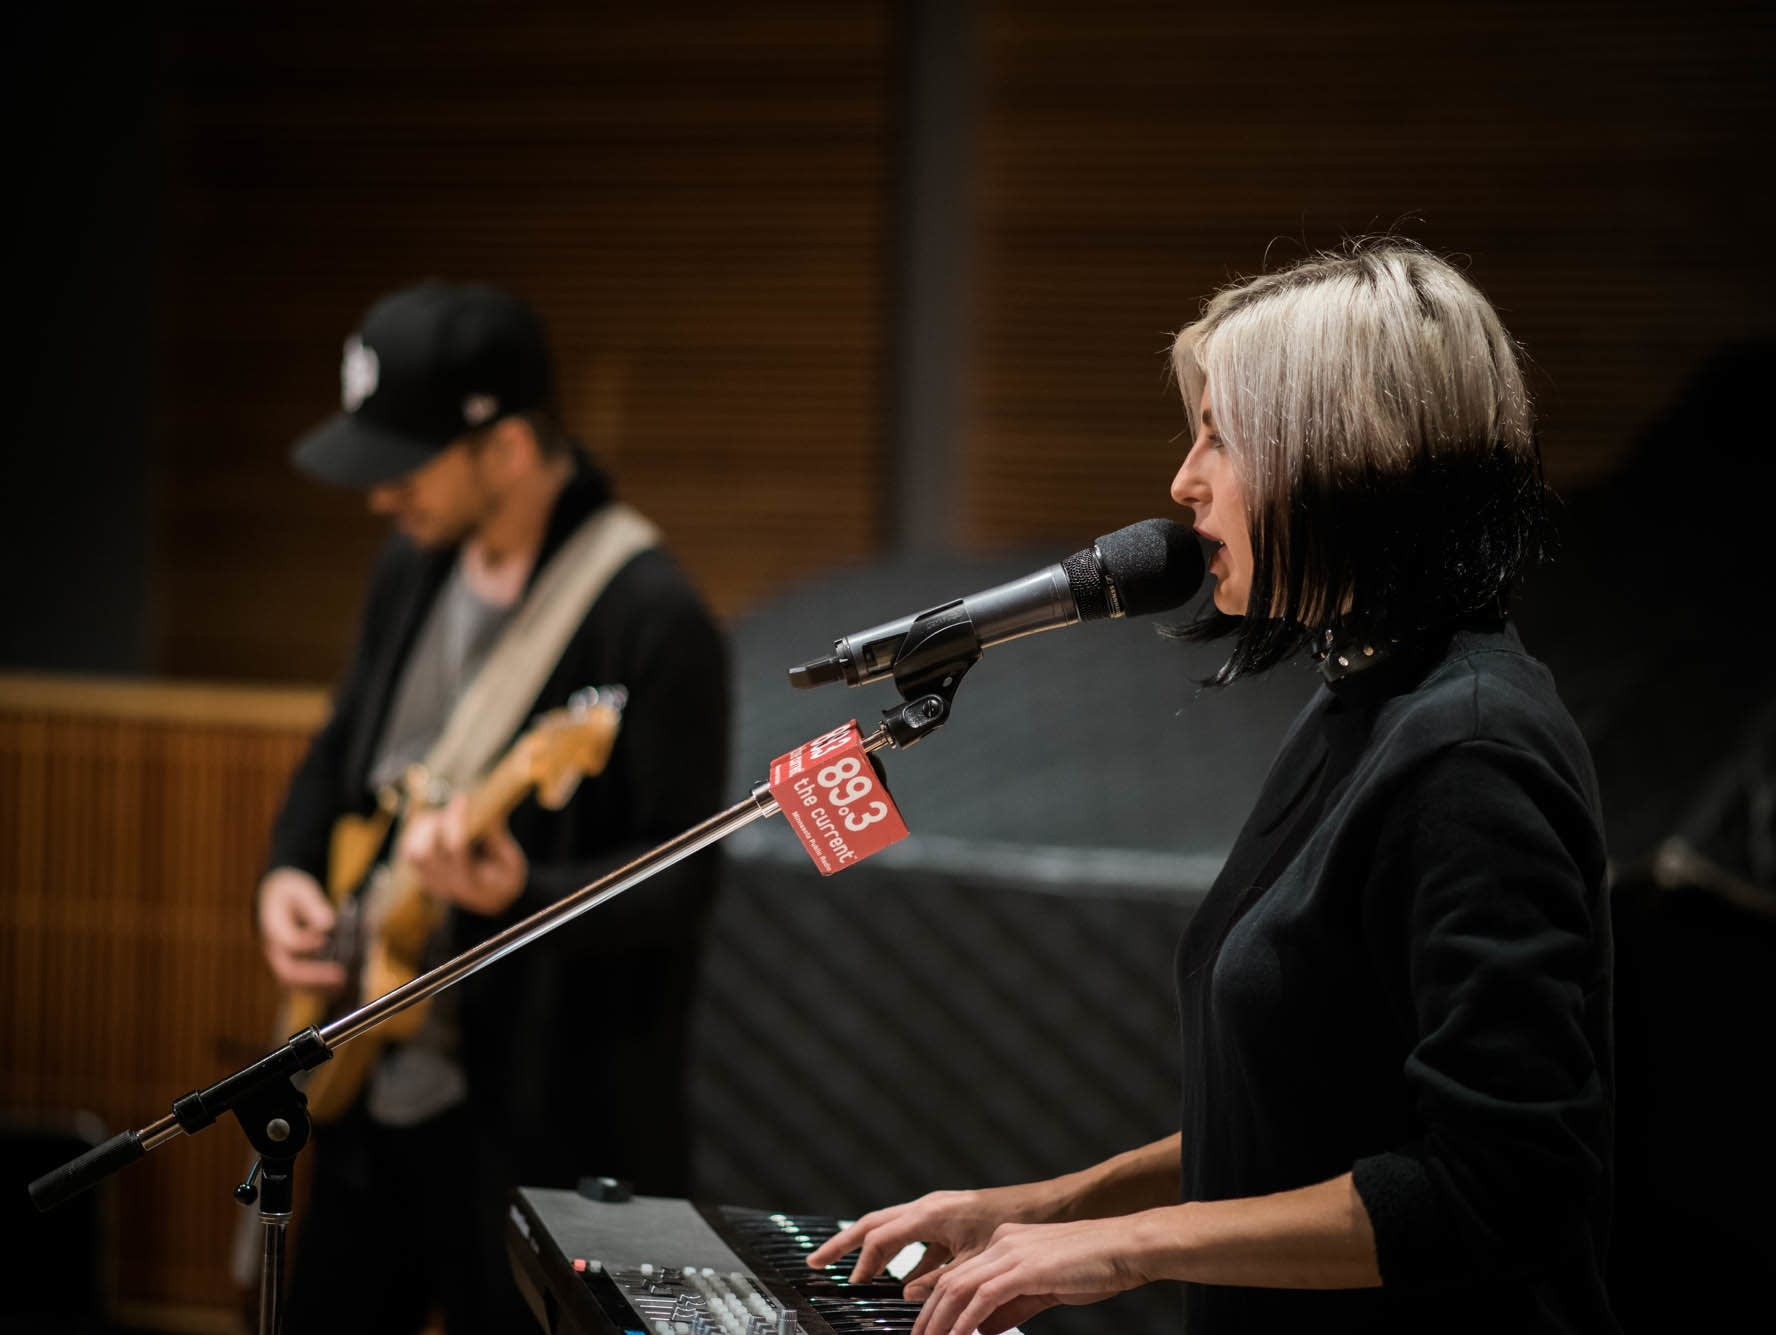 Phantogram perform at The Current